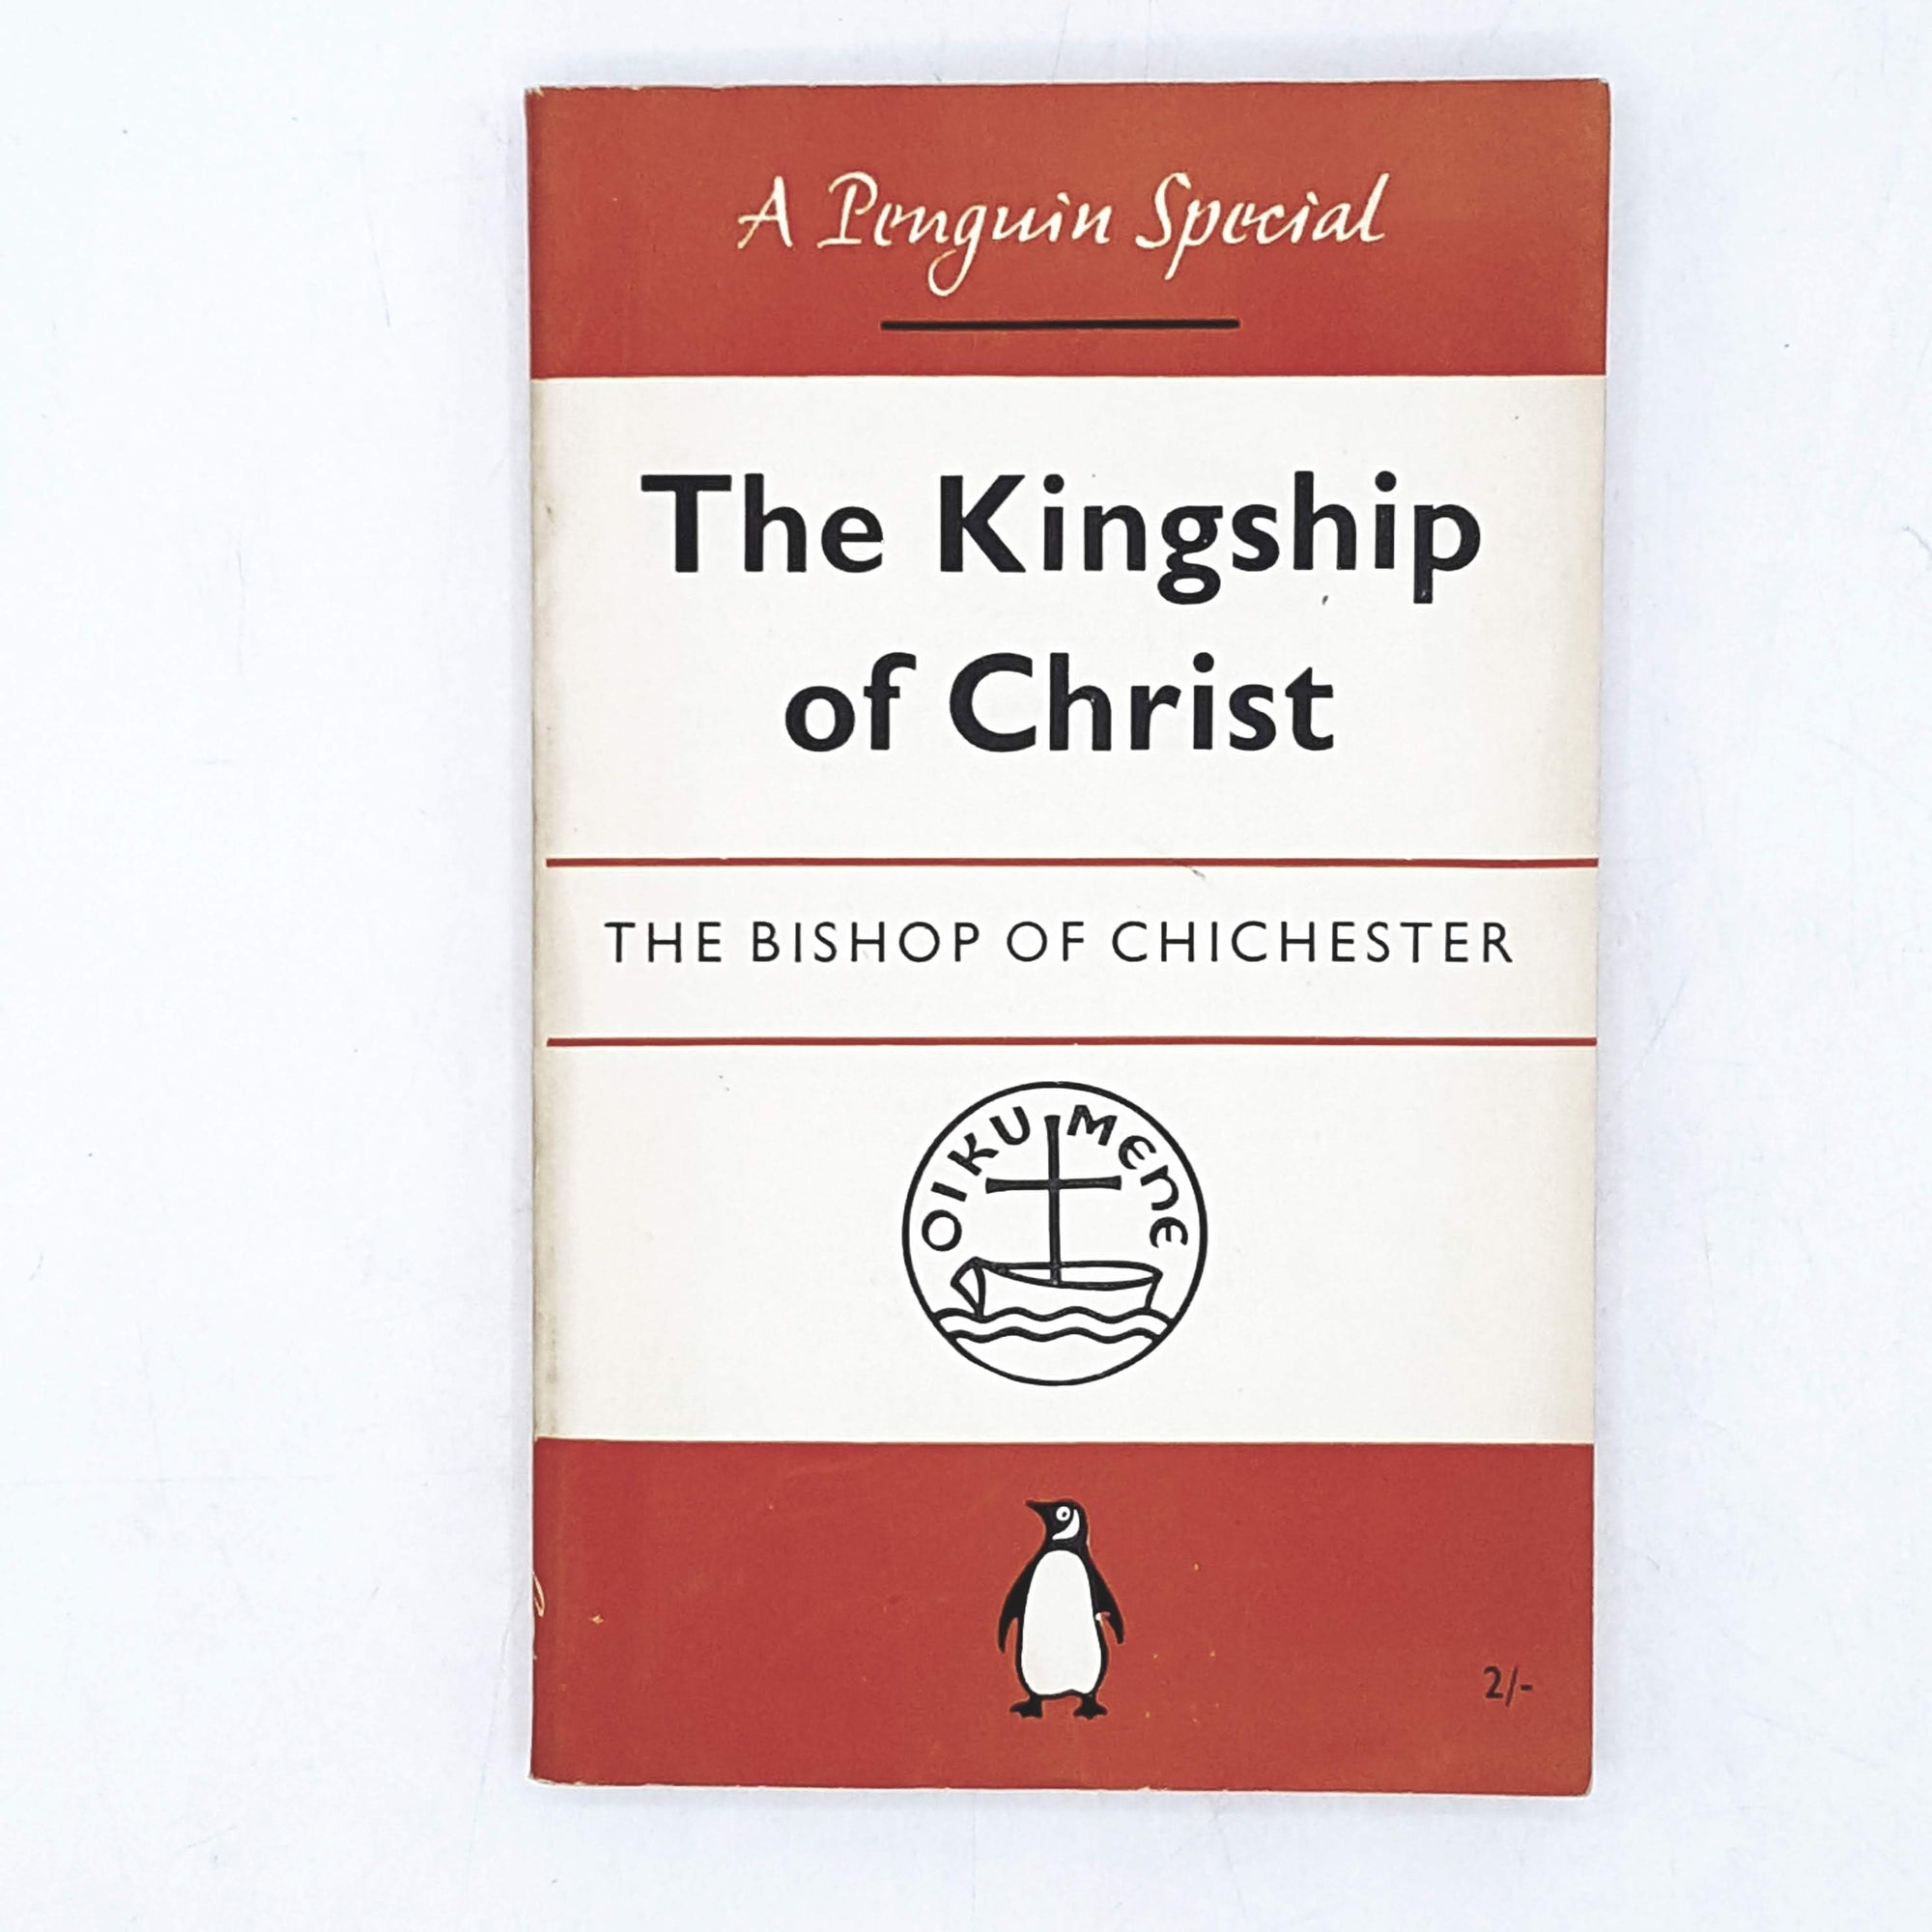 Penguin Special The Kingship of Christ by the Bishop of Chichester 1954